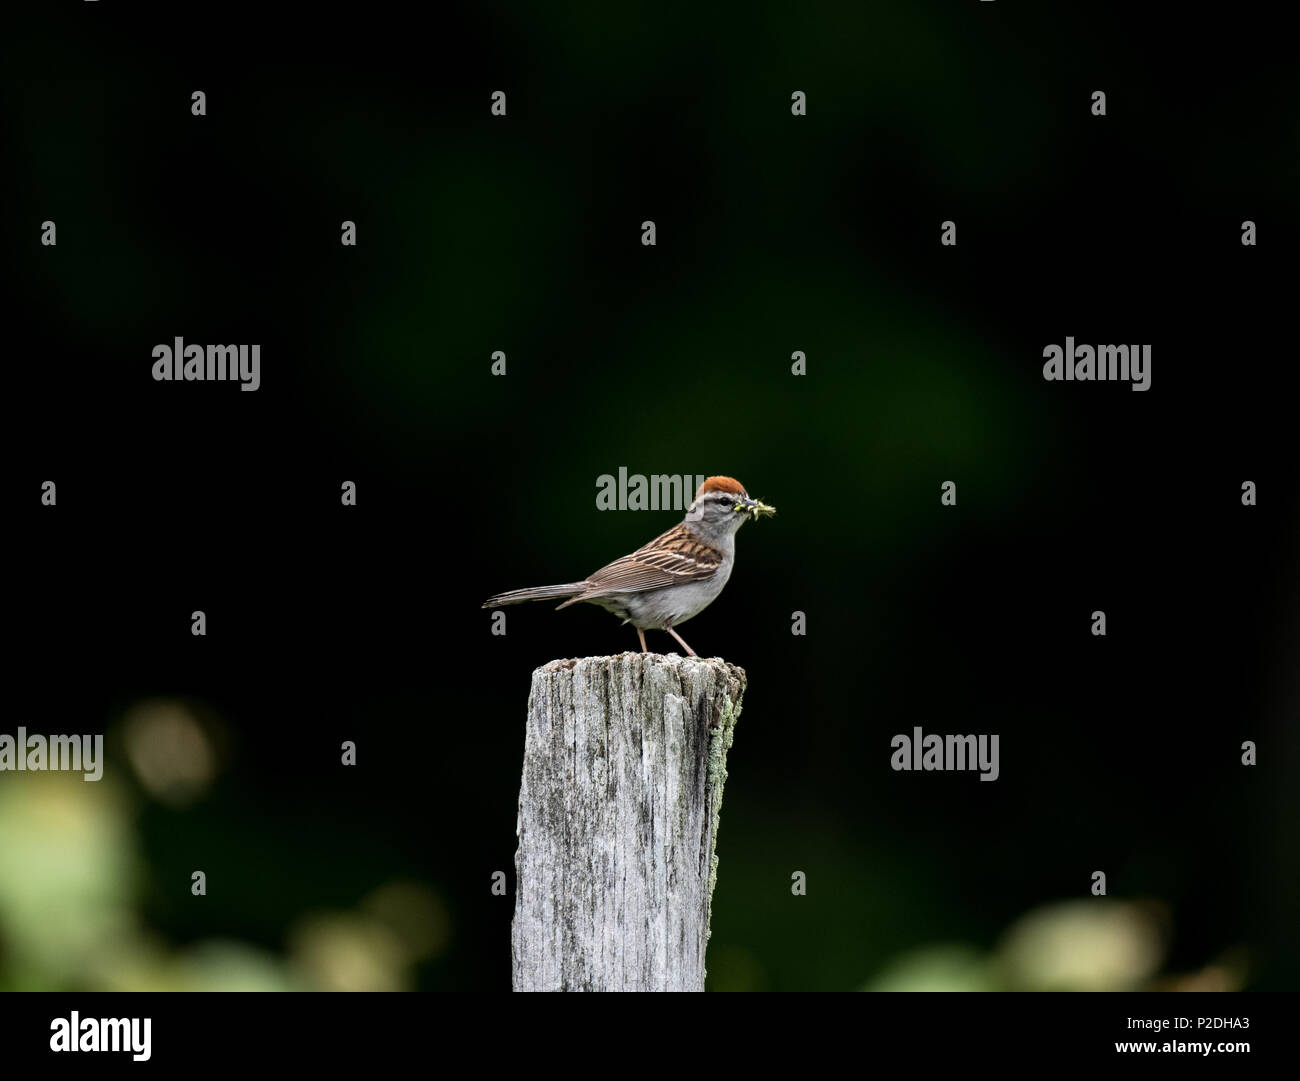 Chipping Sparrow - Stock Image